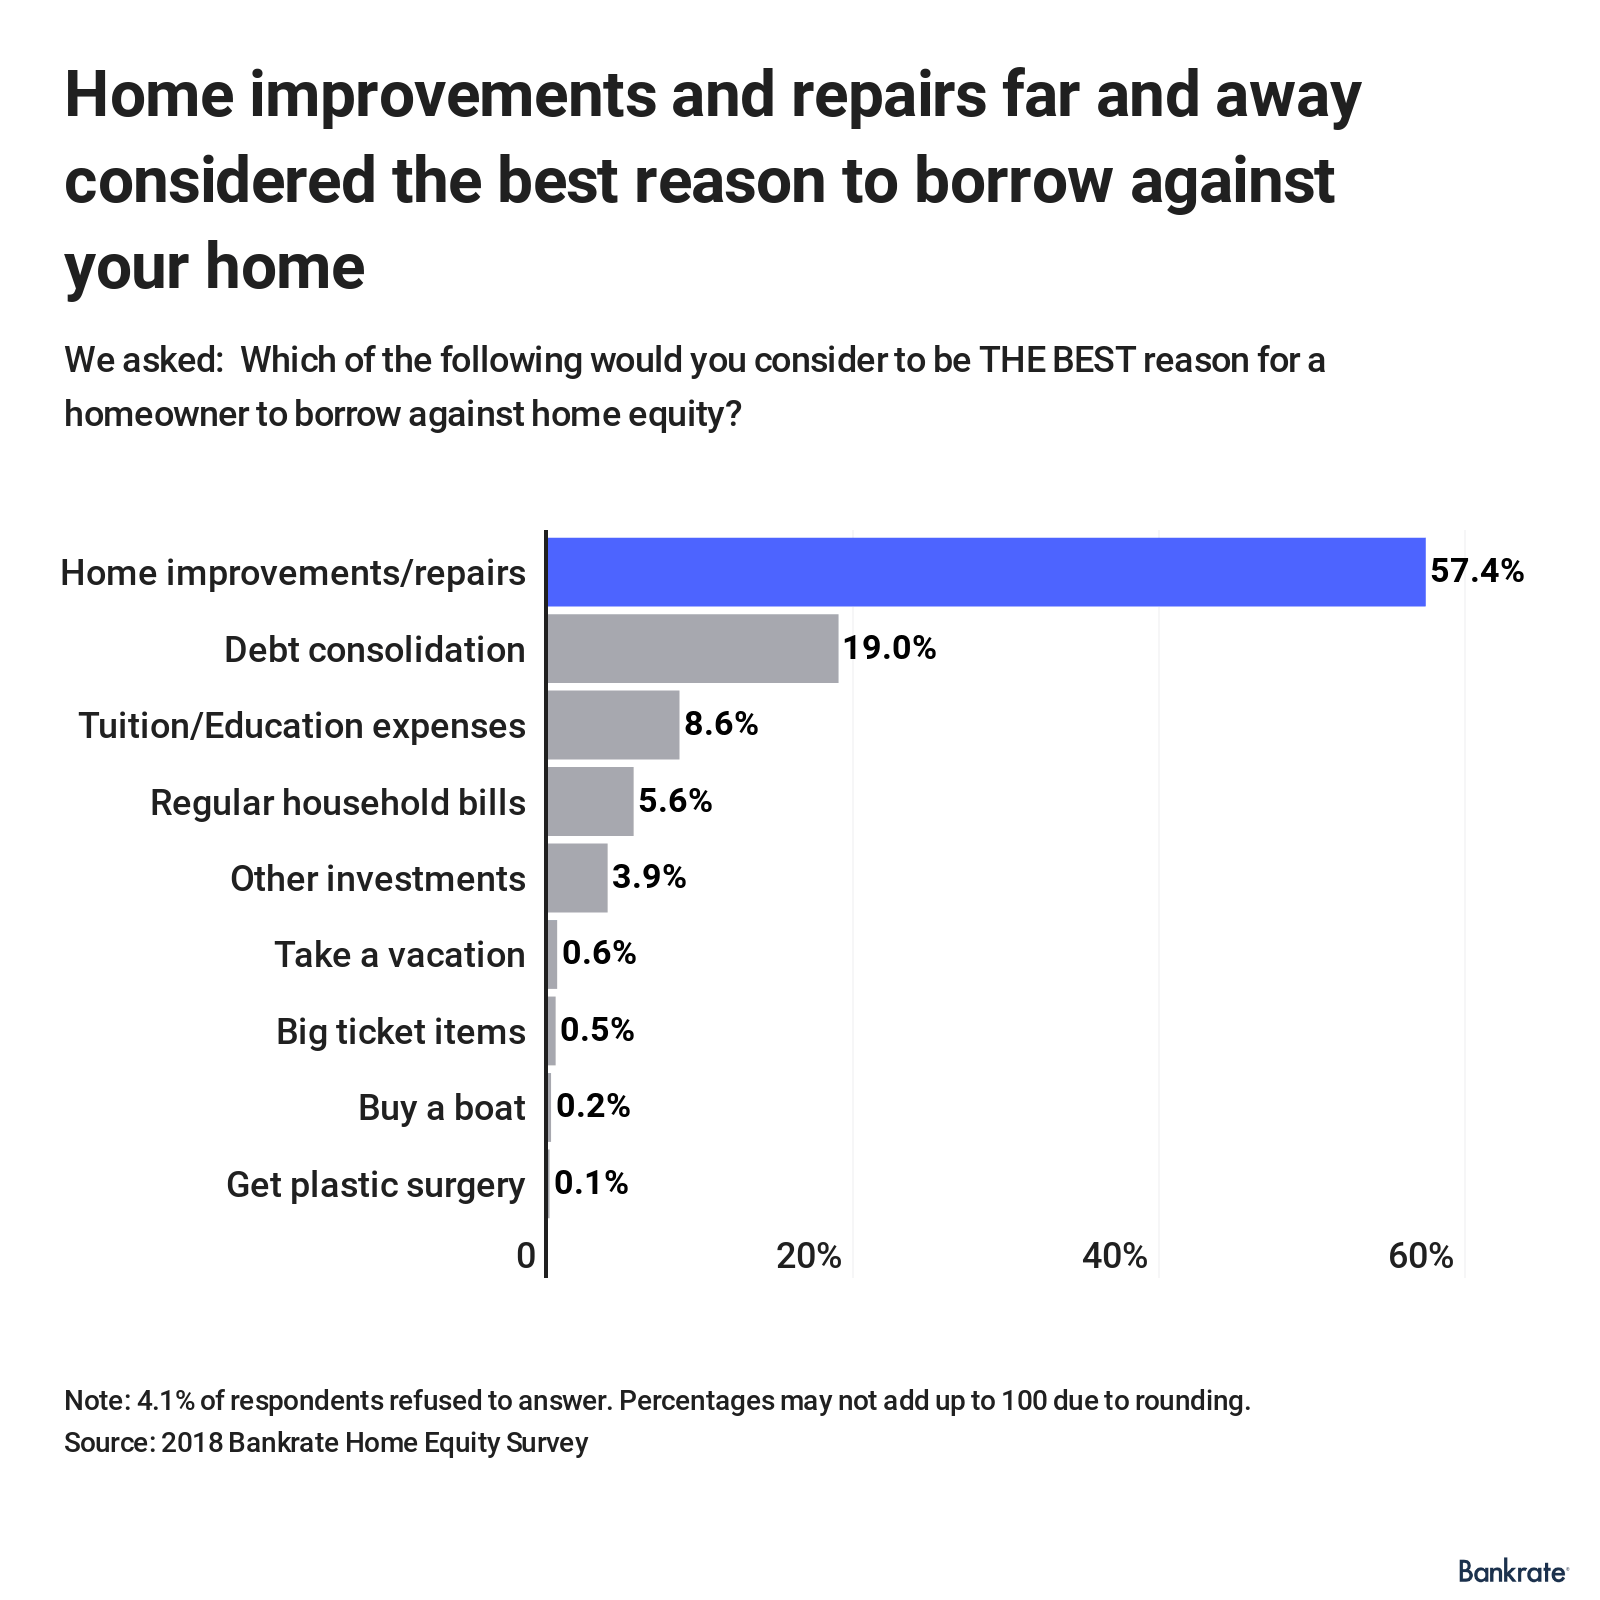 Home improvements and repairs are considered the best reason